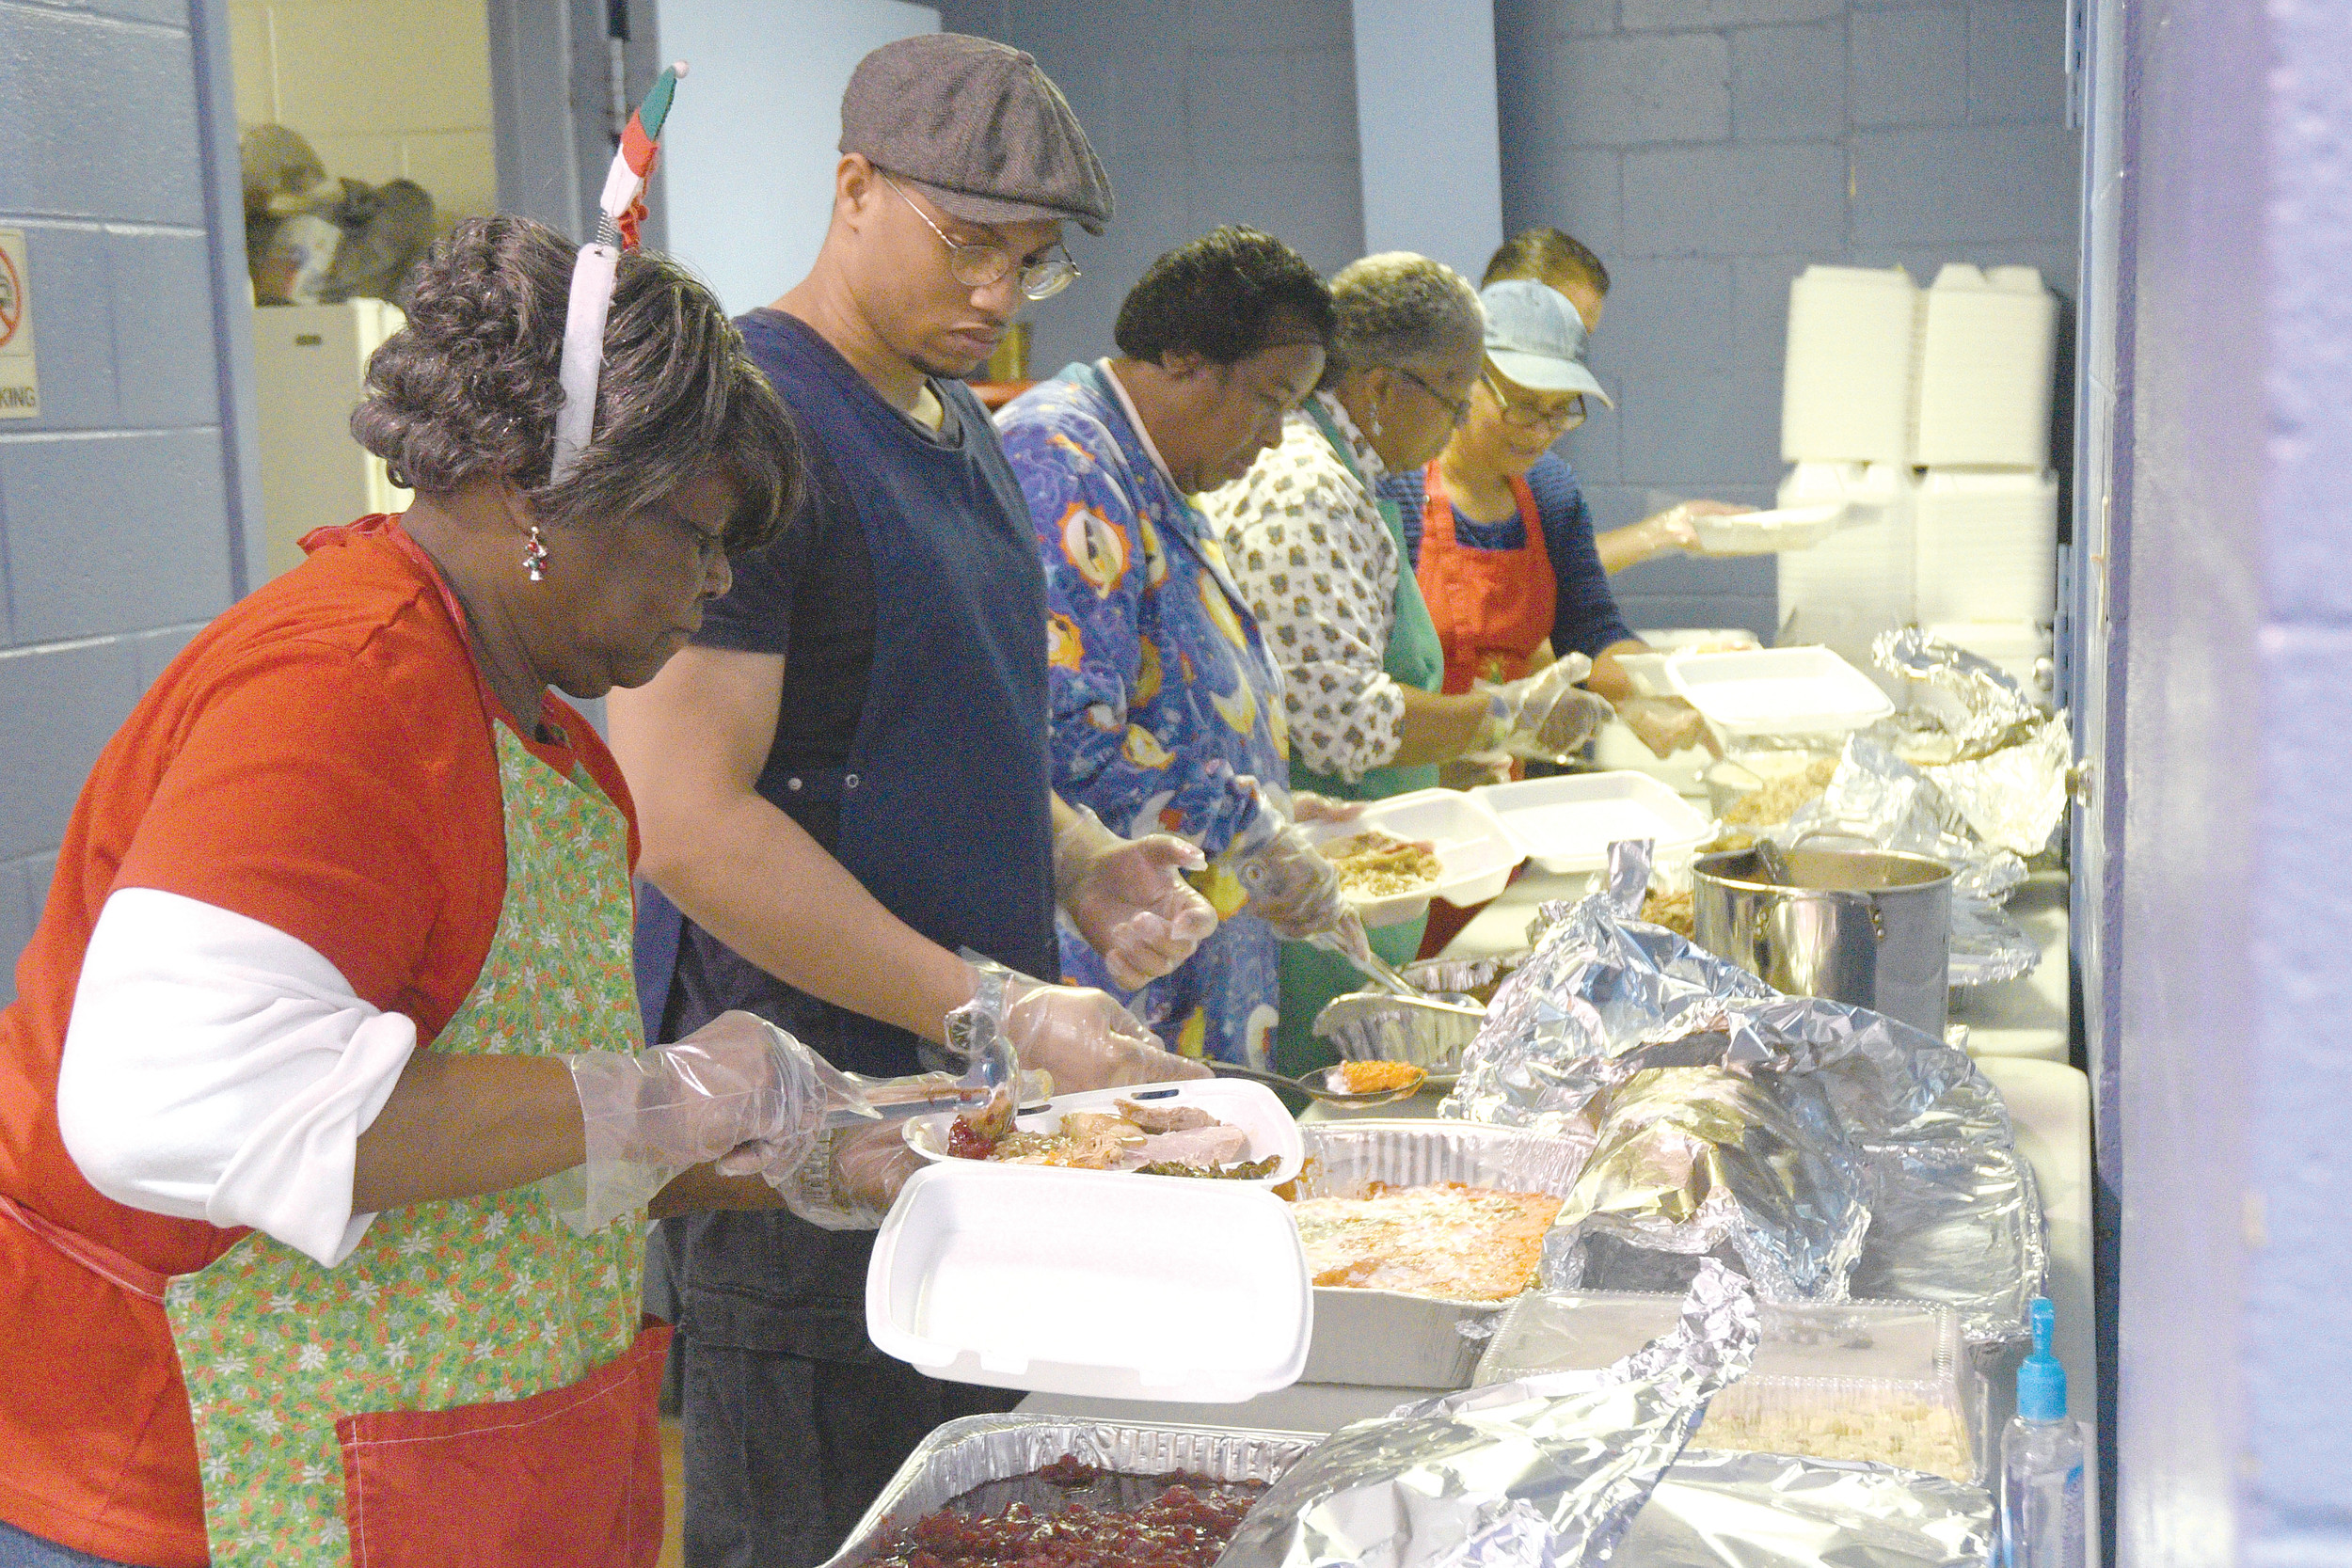 Geraldine Singleton adds cranberry sauce on the assembly line of packaged meals during the annual Christmas dinner served in 2015 in the South Sumter Park gymnasium.